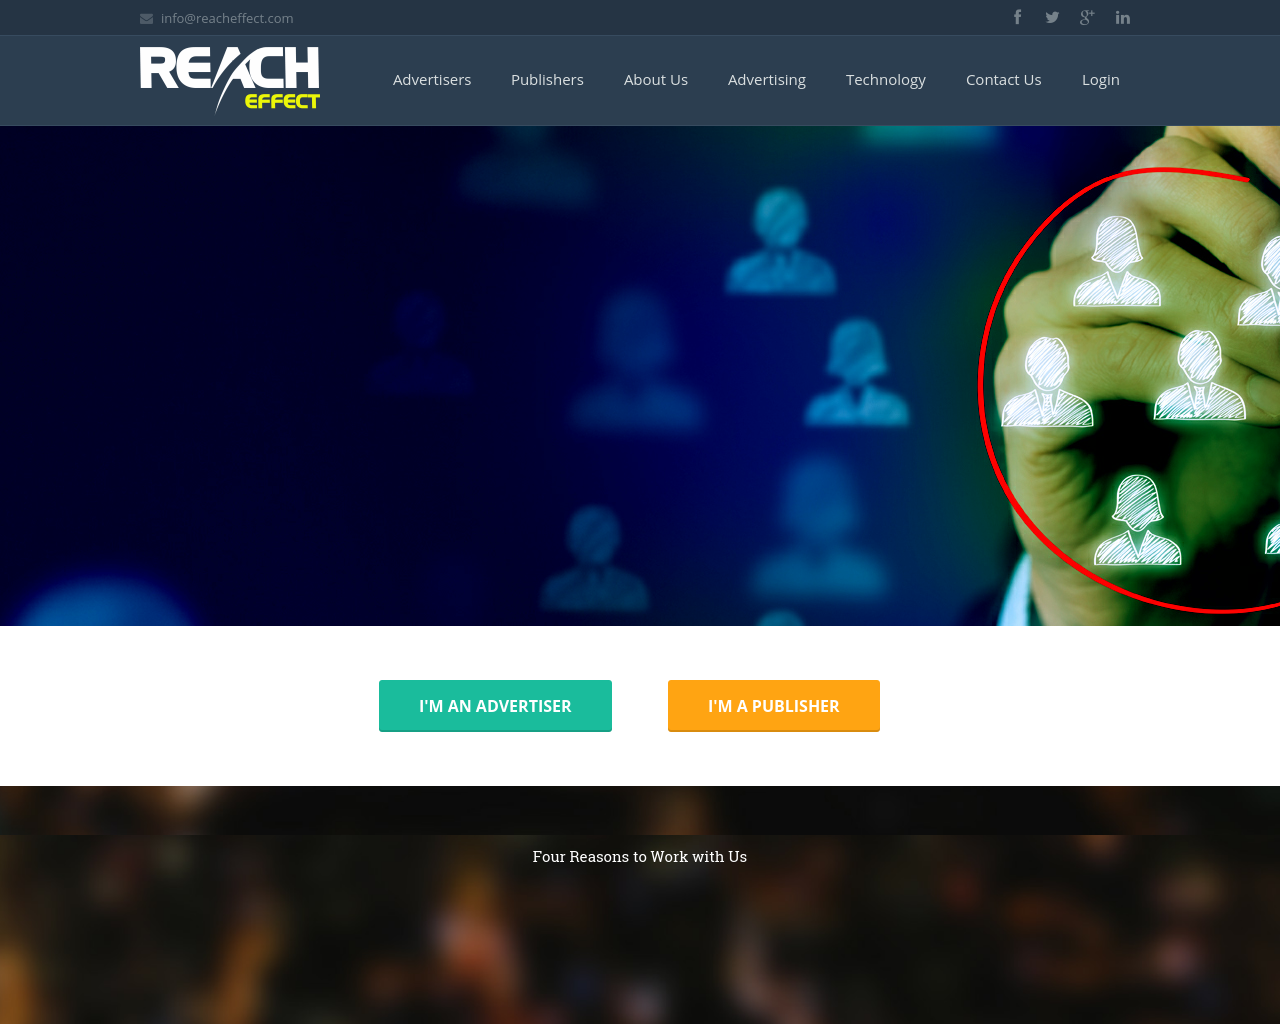 Reacheffect-Advertising-Reviews-Pricing